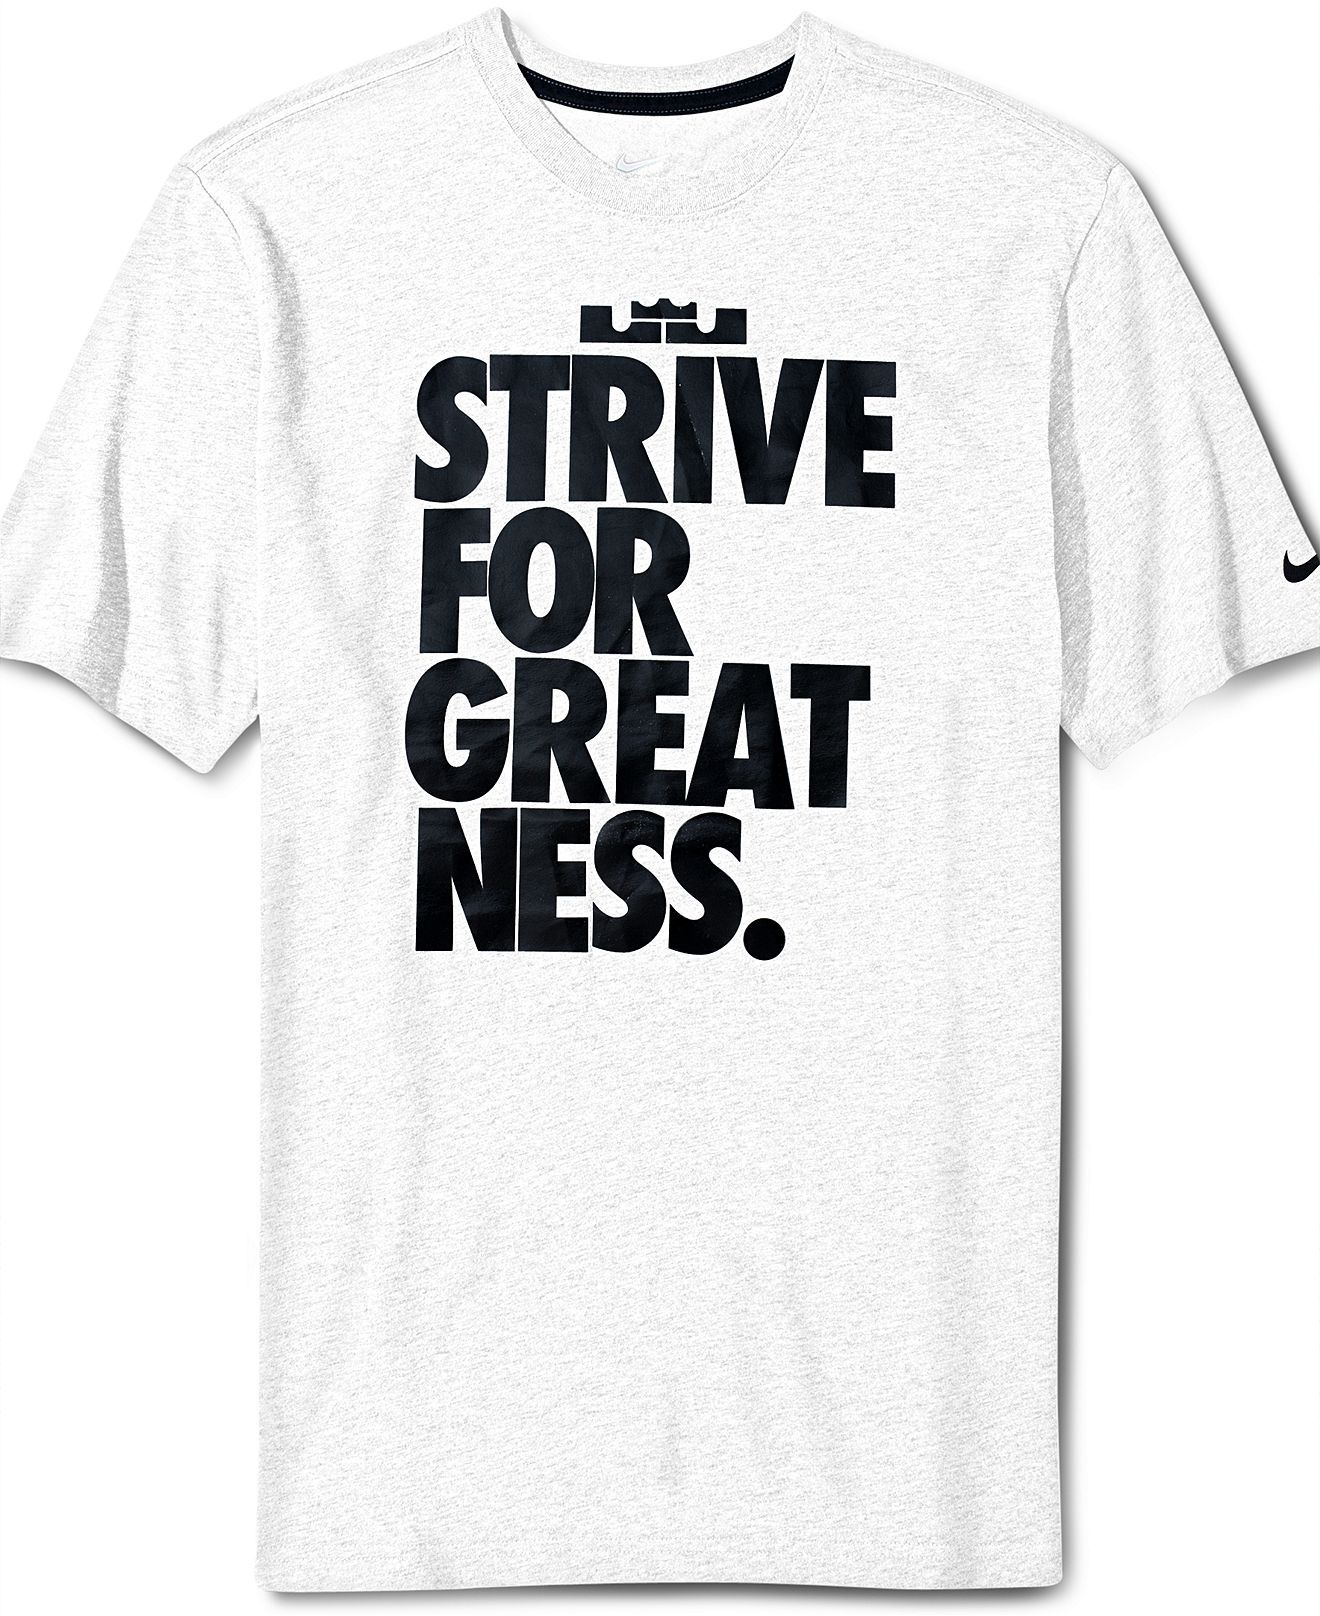 c1ac8d4f1 Nike T-Shirt, Lebron Strive For Greatness Graphic Tee - Mens T-Shirts -  Macy's